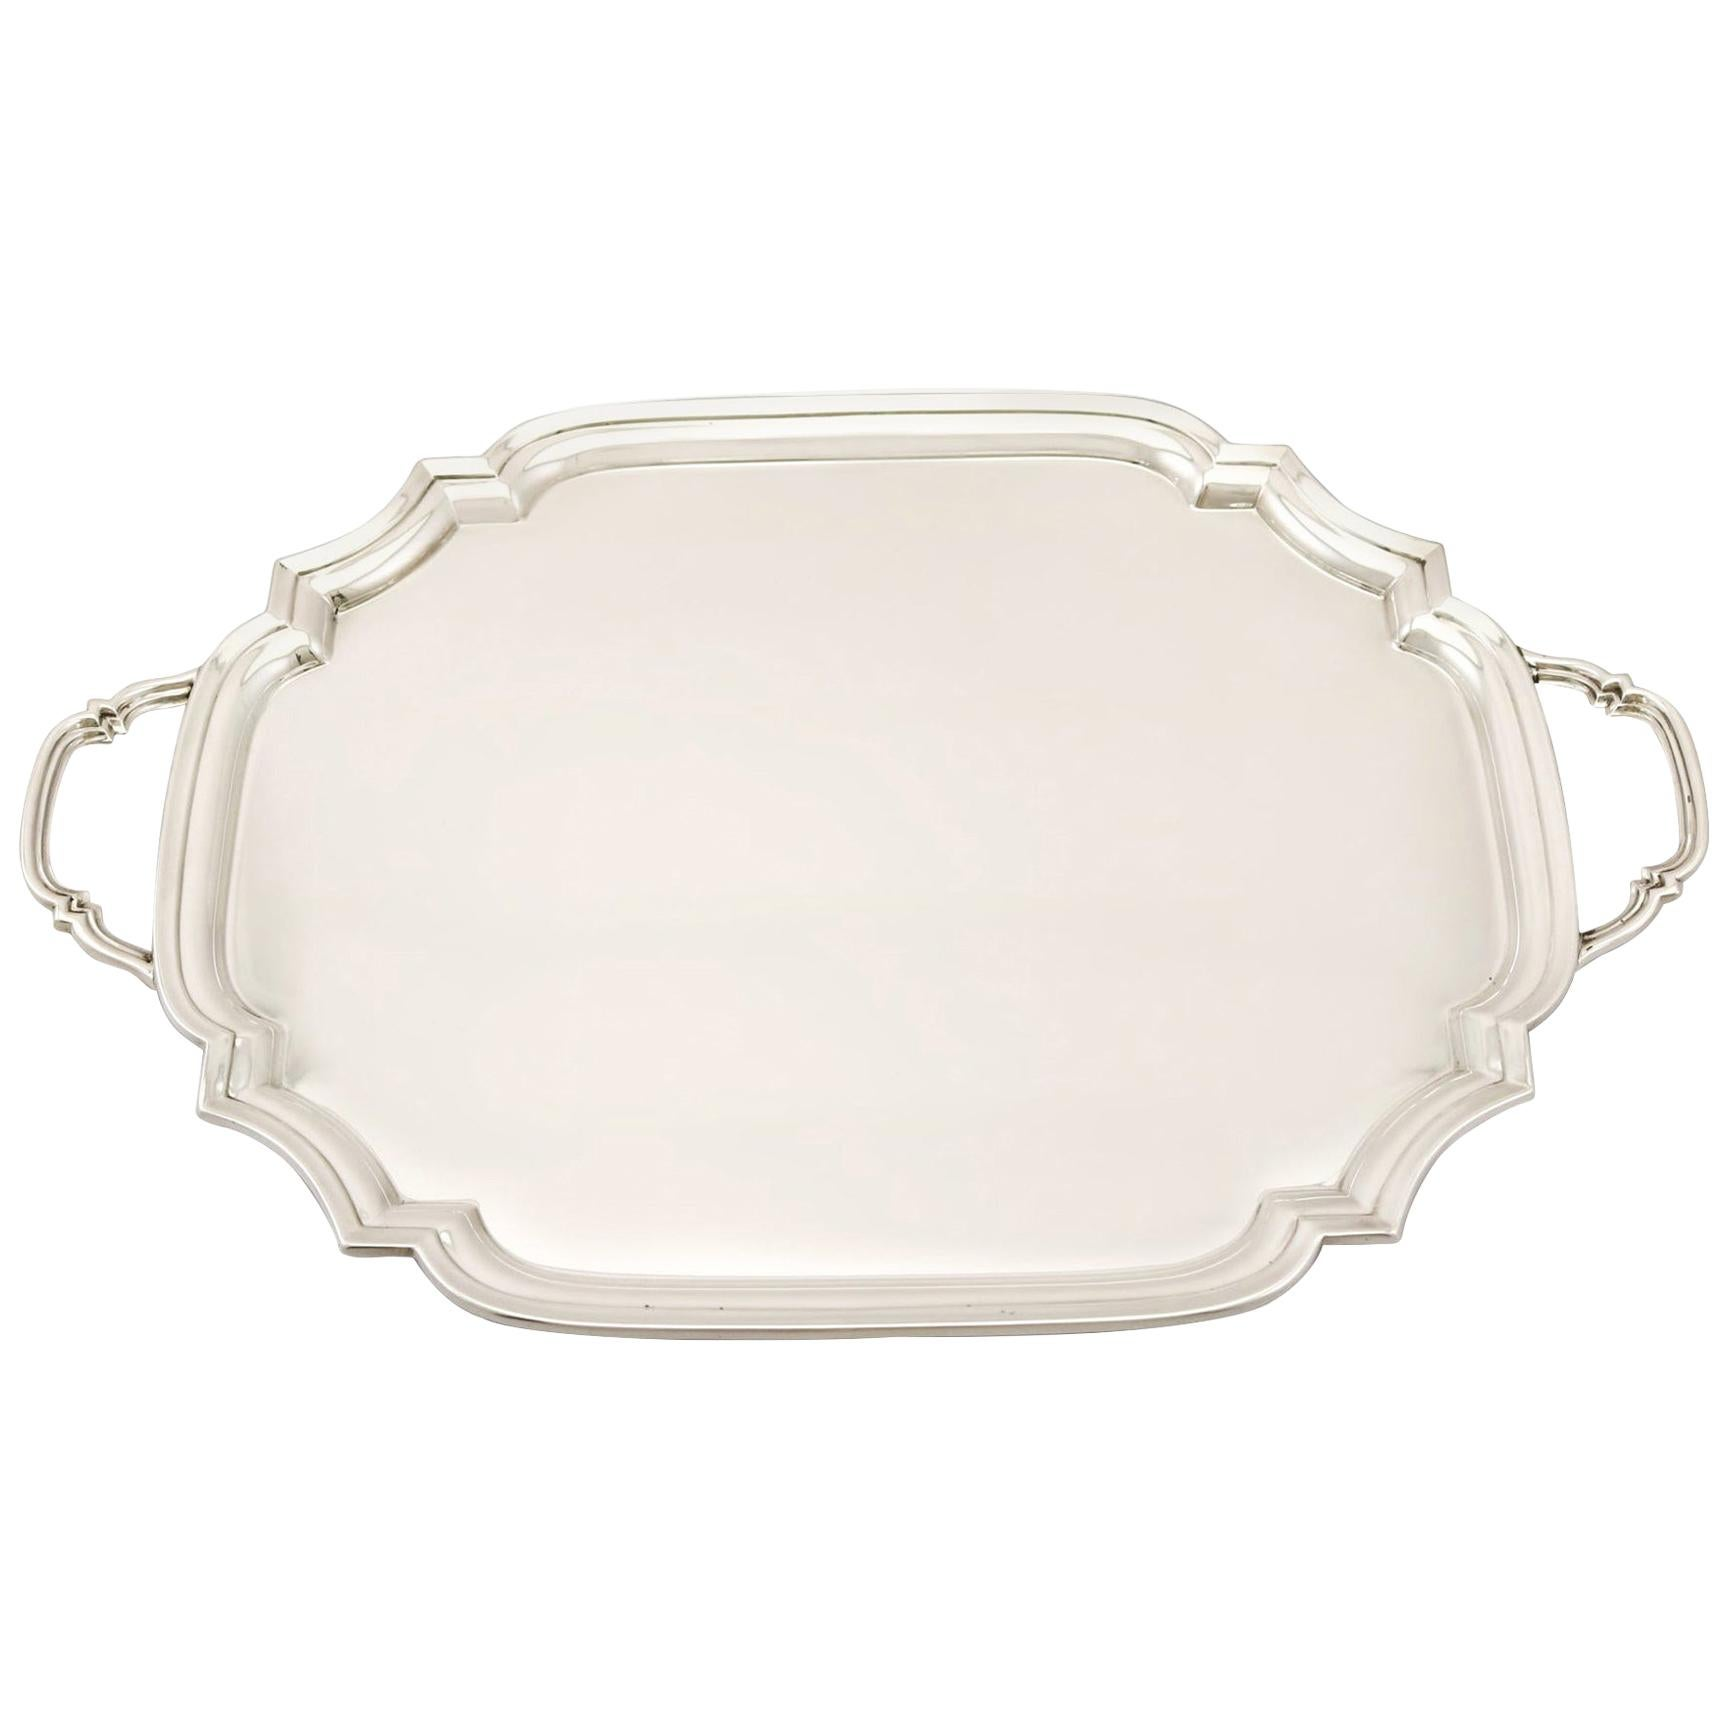 Antique Art Deco Sterling Silver Drinks Tray